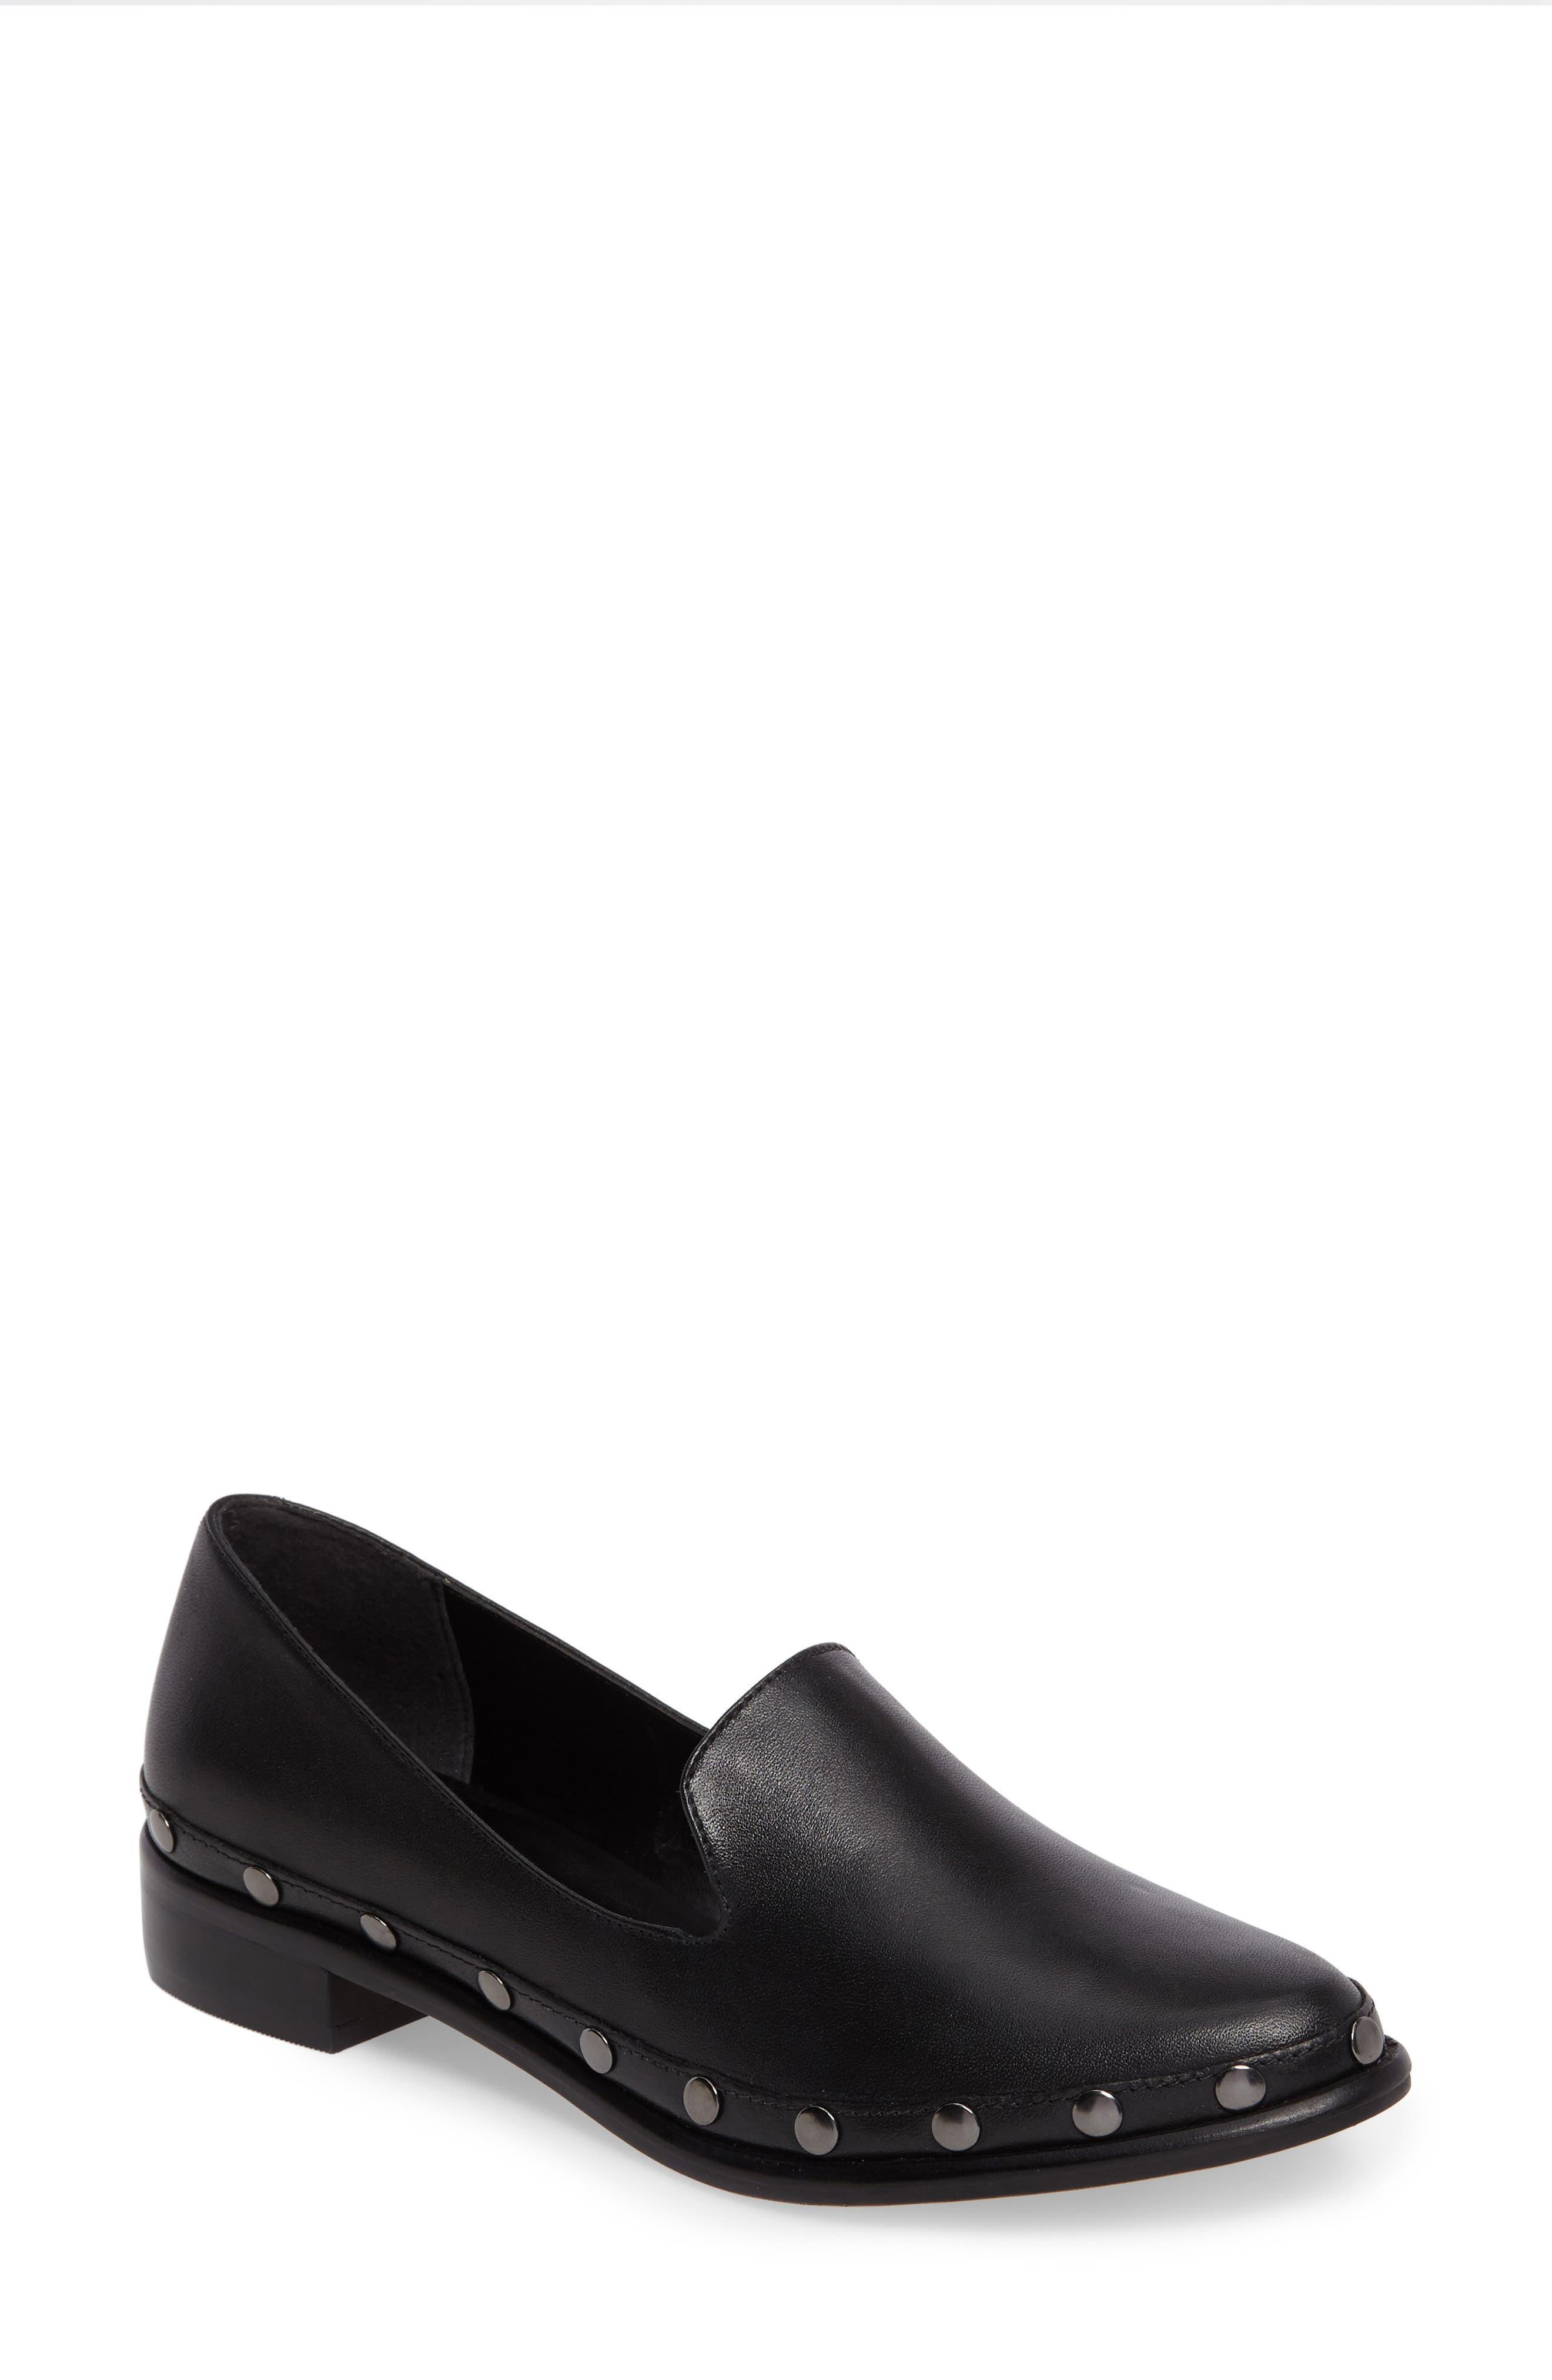 M4D3 Oceania Loafer,                         Main,                         color, 001